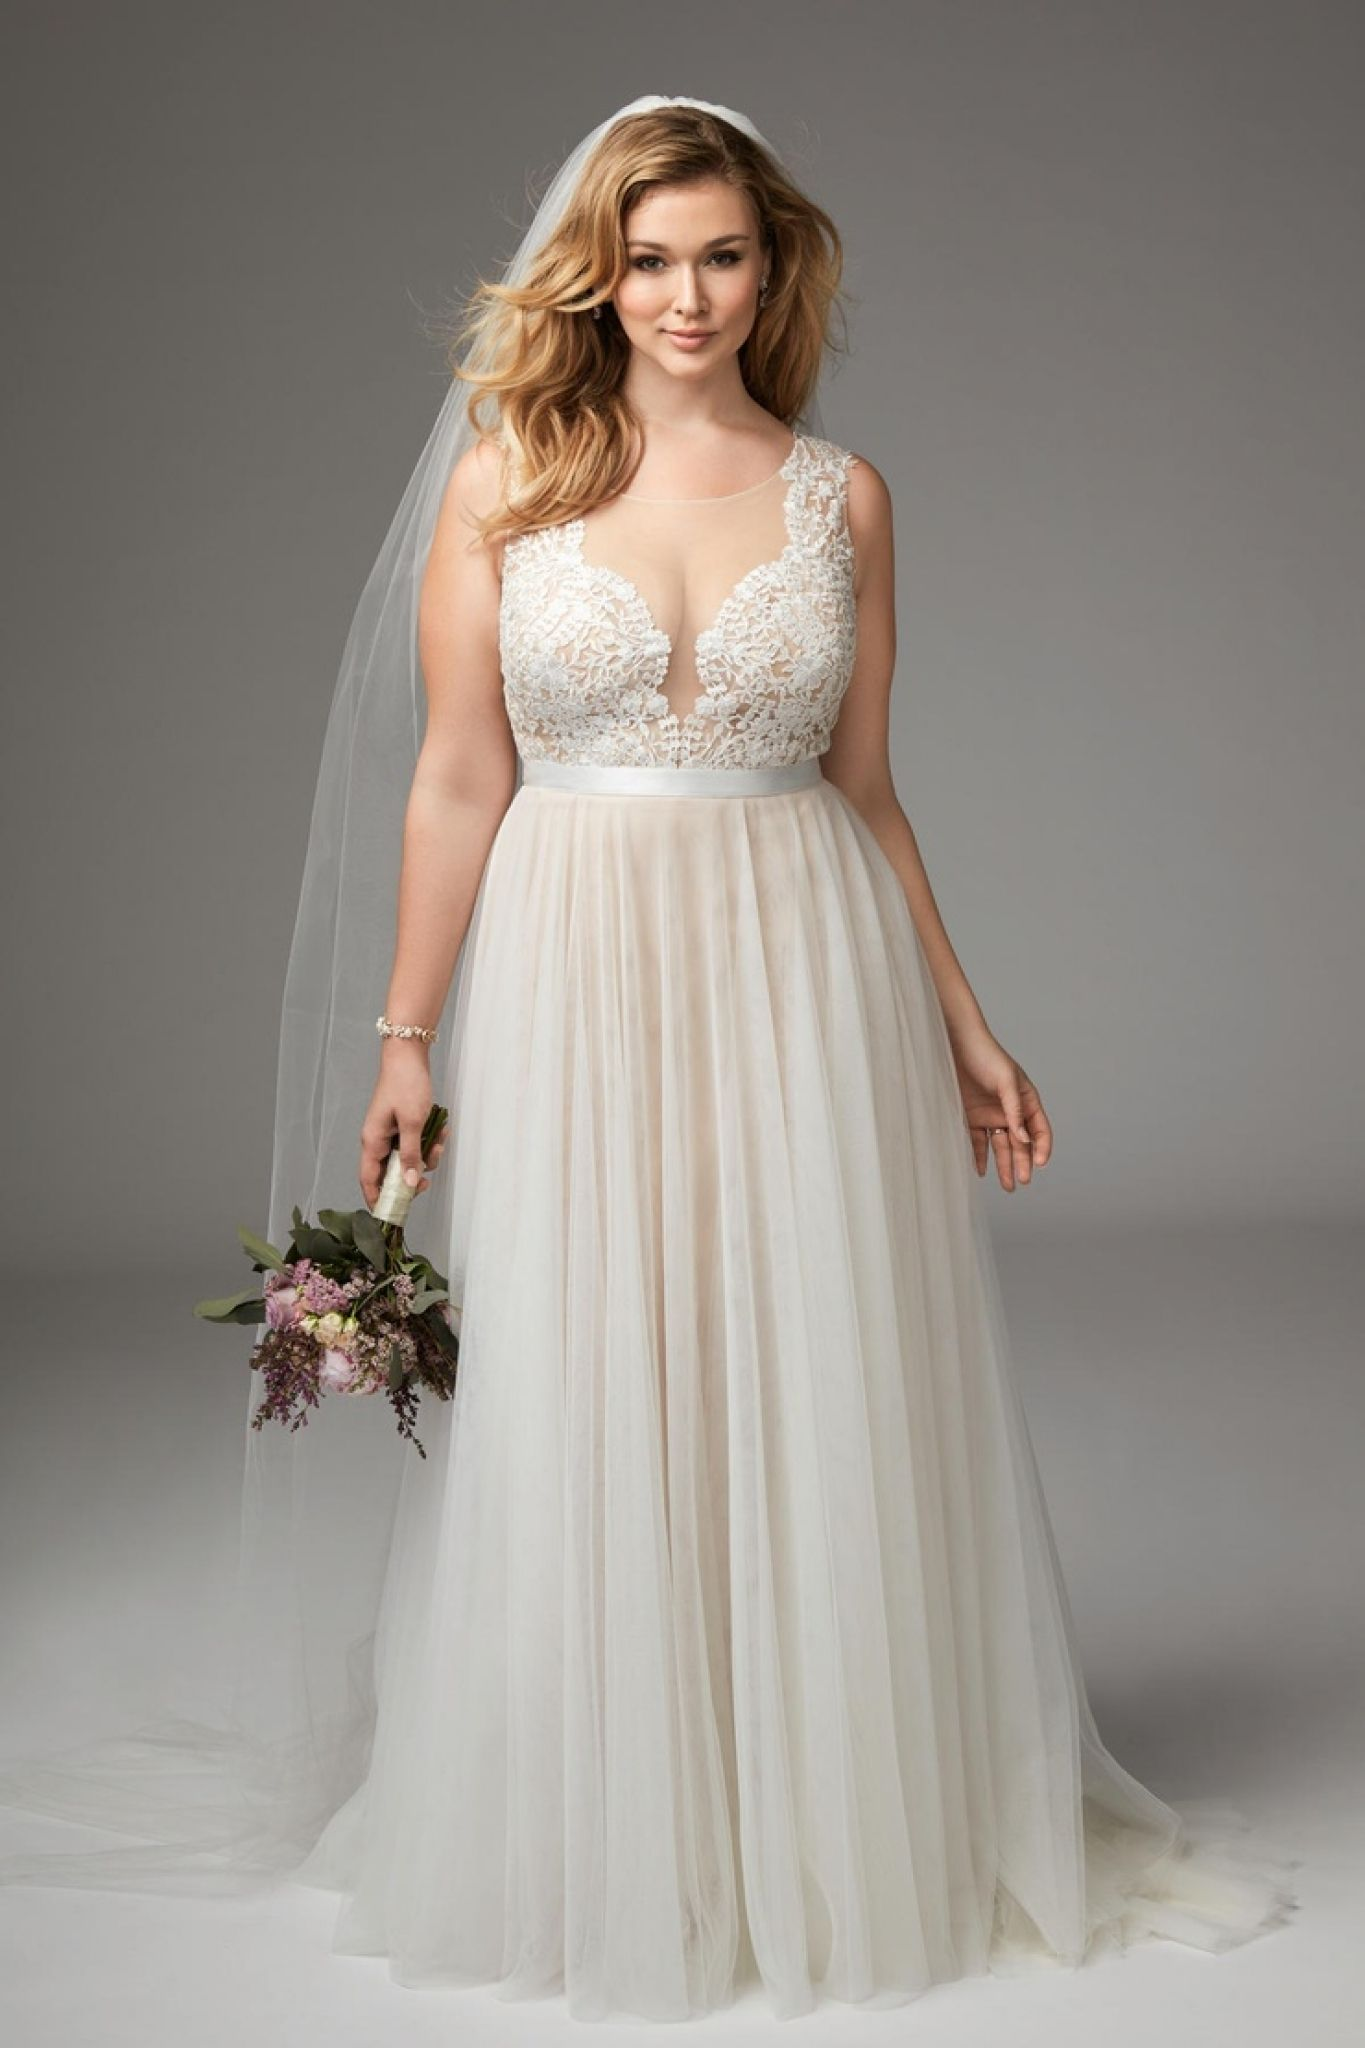 Plus Size Wedding Dresses Chicago For Fall Check More At Http Svesty